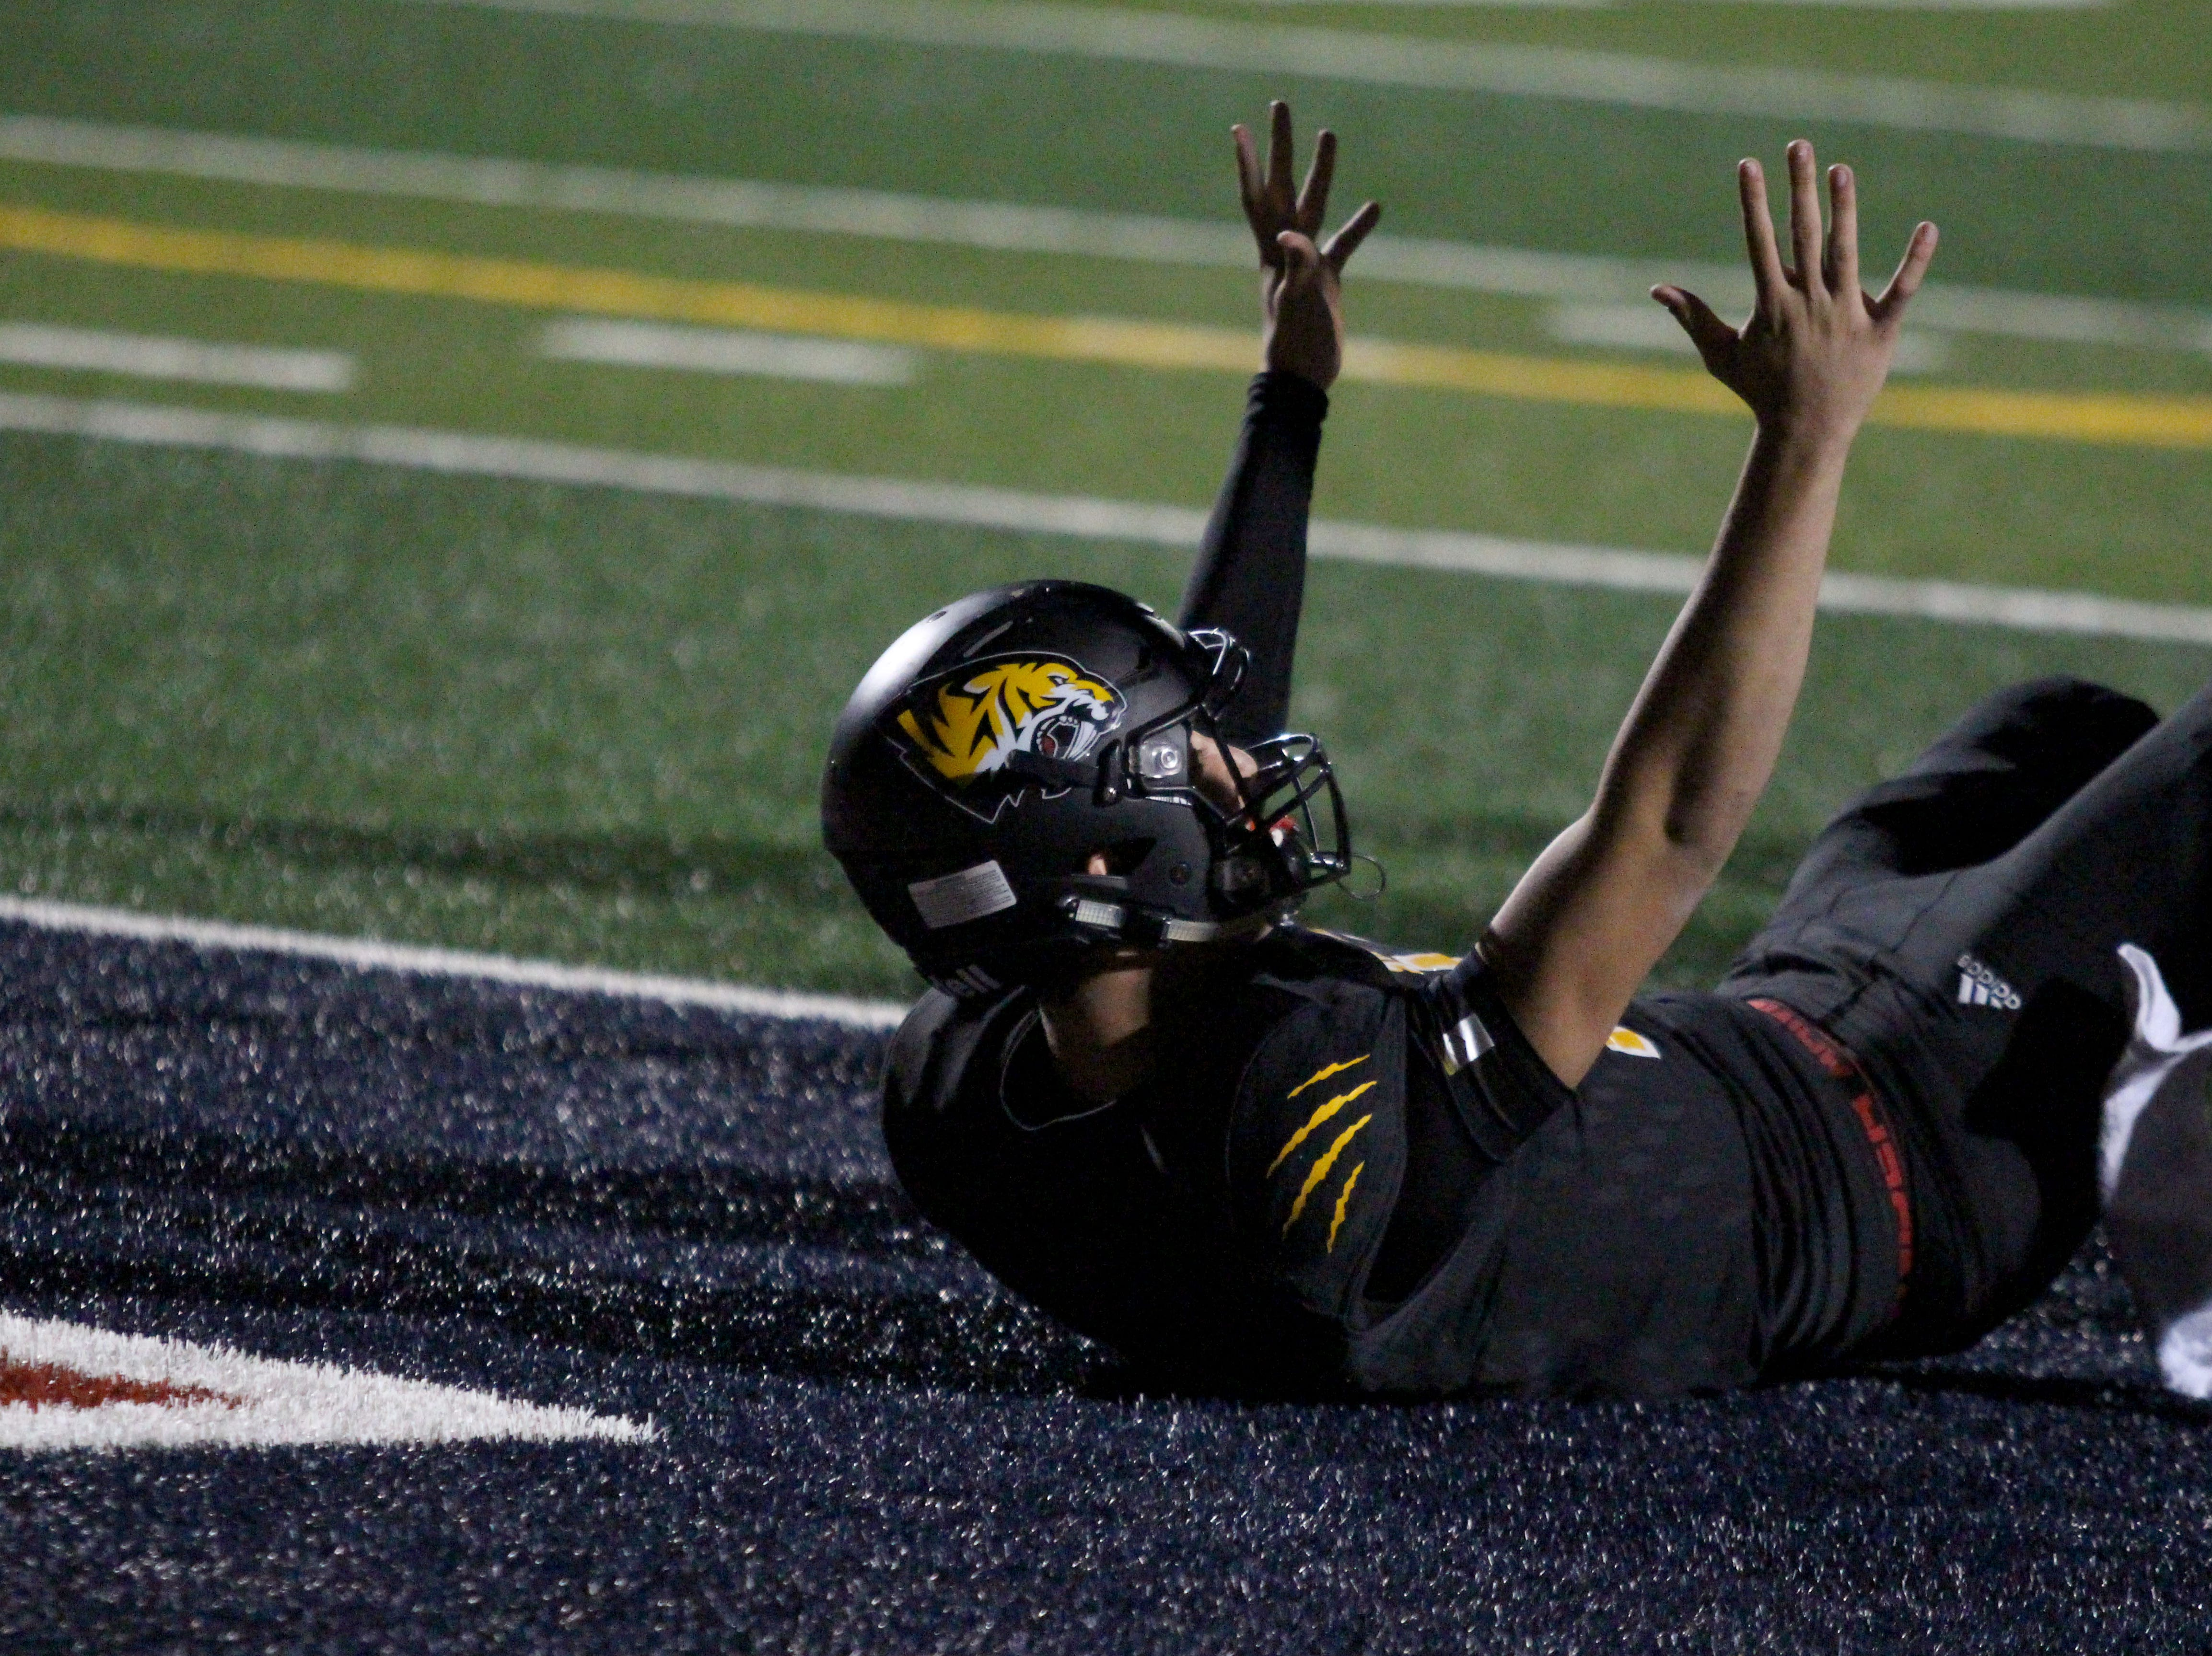 Saguaro's Tyler Beverett makes the touchdown signal after coming up just short of the end zone against Desert Edge on Friday night at Coronado High School on Nov. 16, 2018.